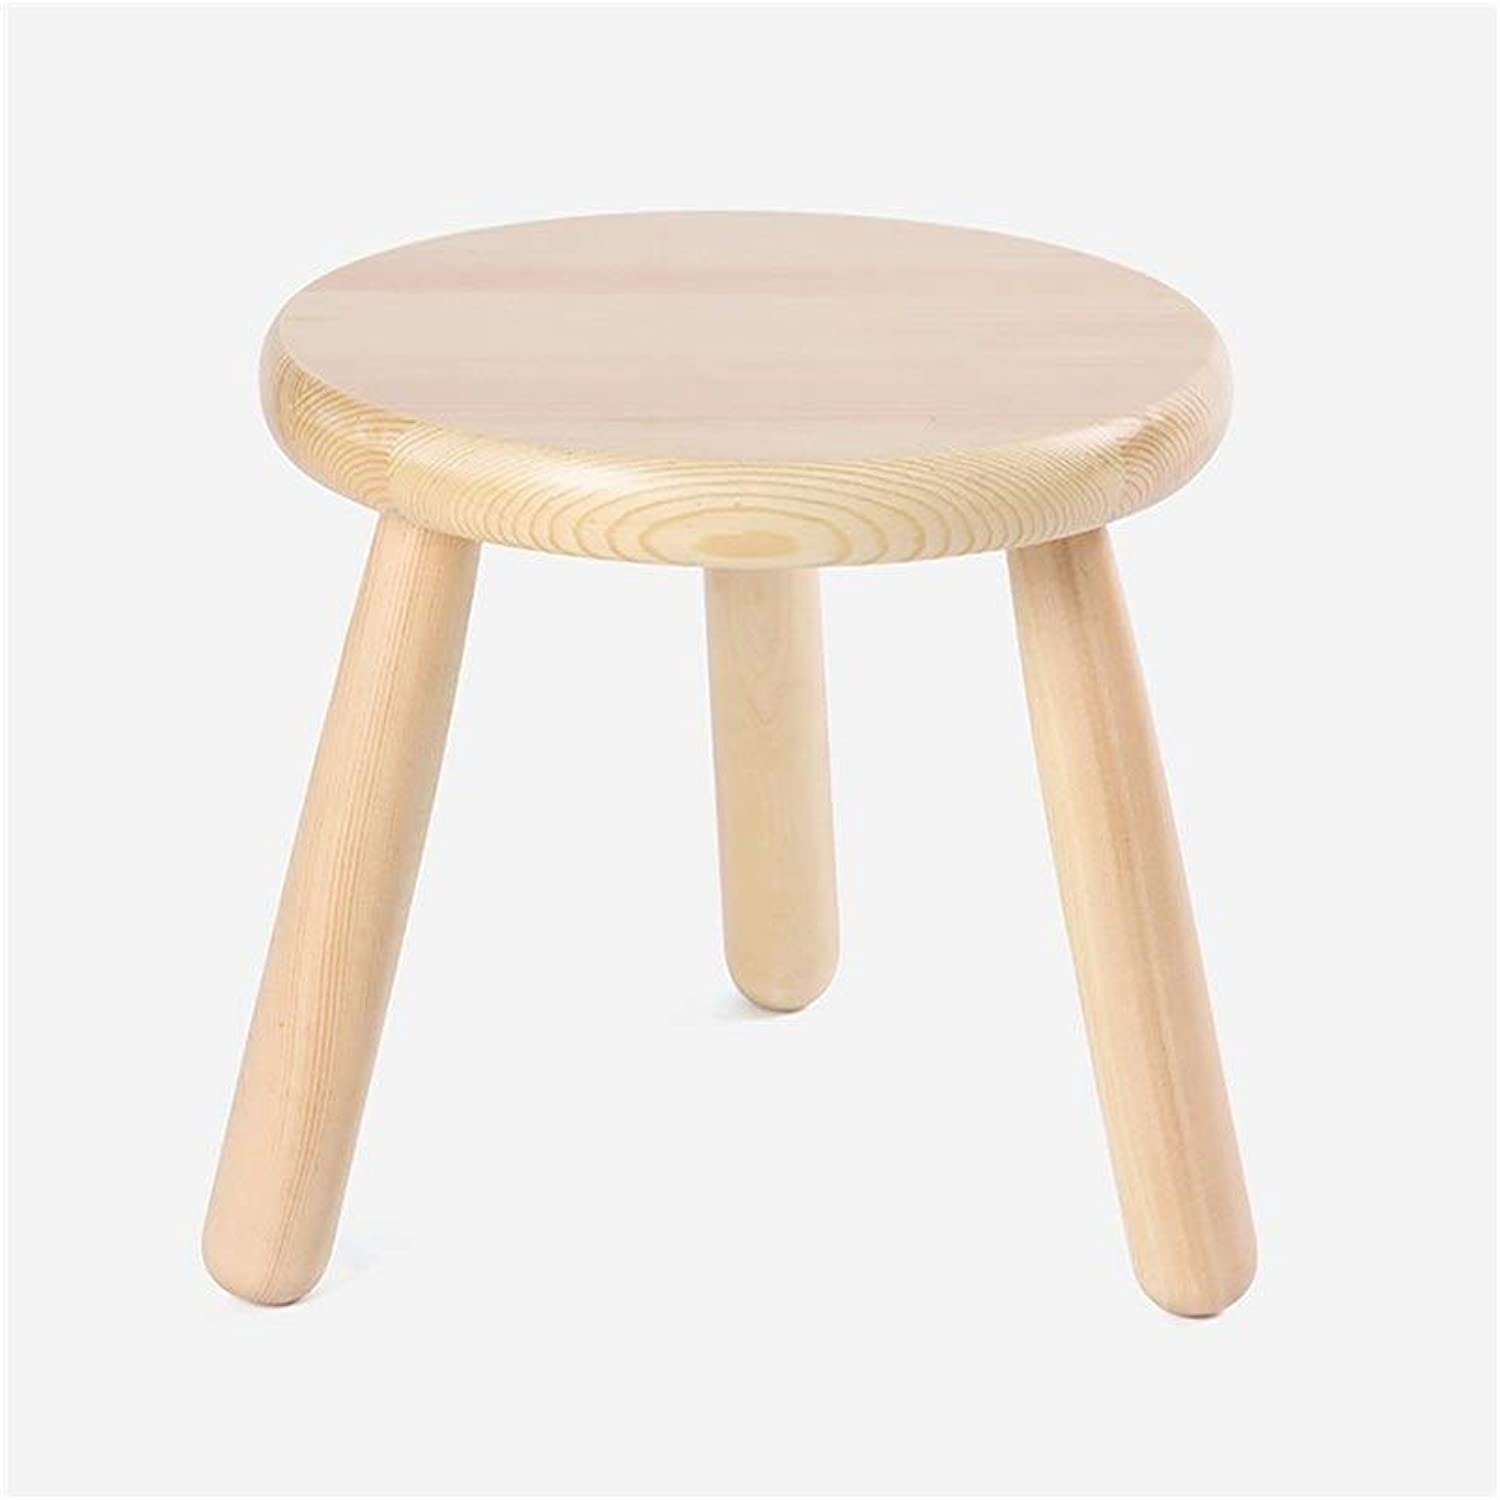 Solid Wood Creative Footstool Living Room Three-Legged Stool Doorway Changing shoes Stool 25  25 cm JINRONG (color   White)